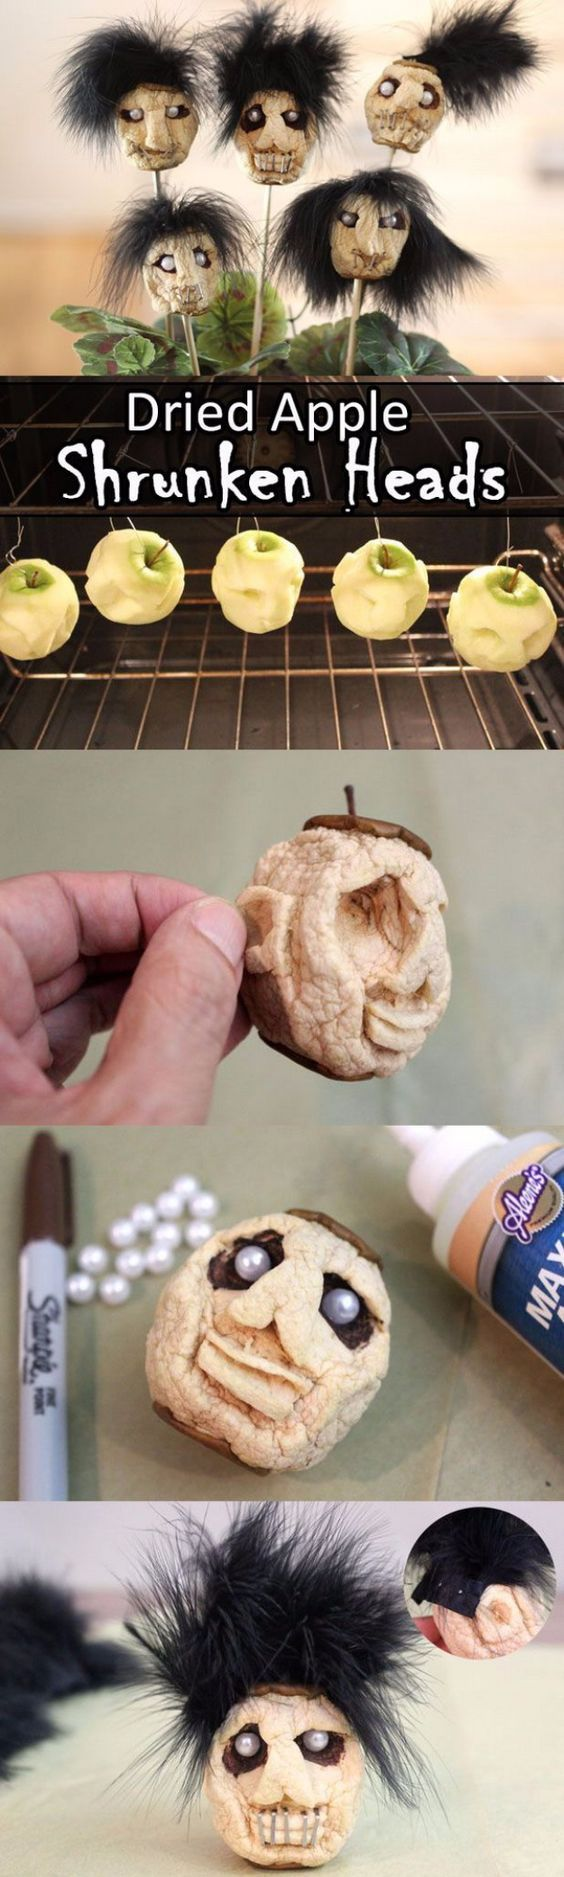 DIY Halloween Decorations - dried-apple-shrunken-heads - Best Easy, Cheap and Quick Halloween Decor Ideas and Crafts for Inside and Outside Your Home - Scary, Creepy Cute and Fun Outdoor Project Tutorials http://diyjoy.com/cheap-diy-halloween-decorations